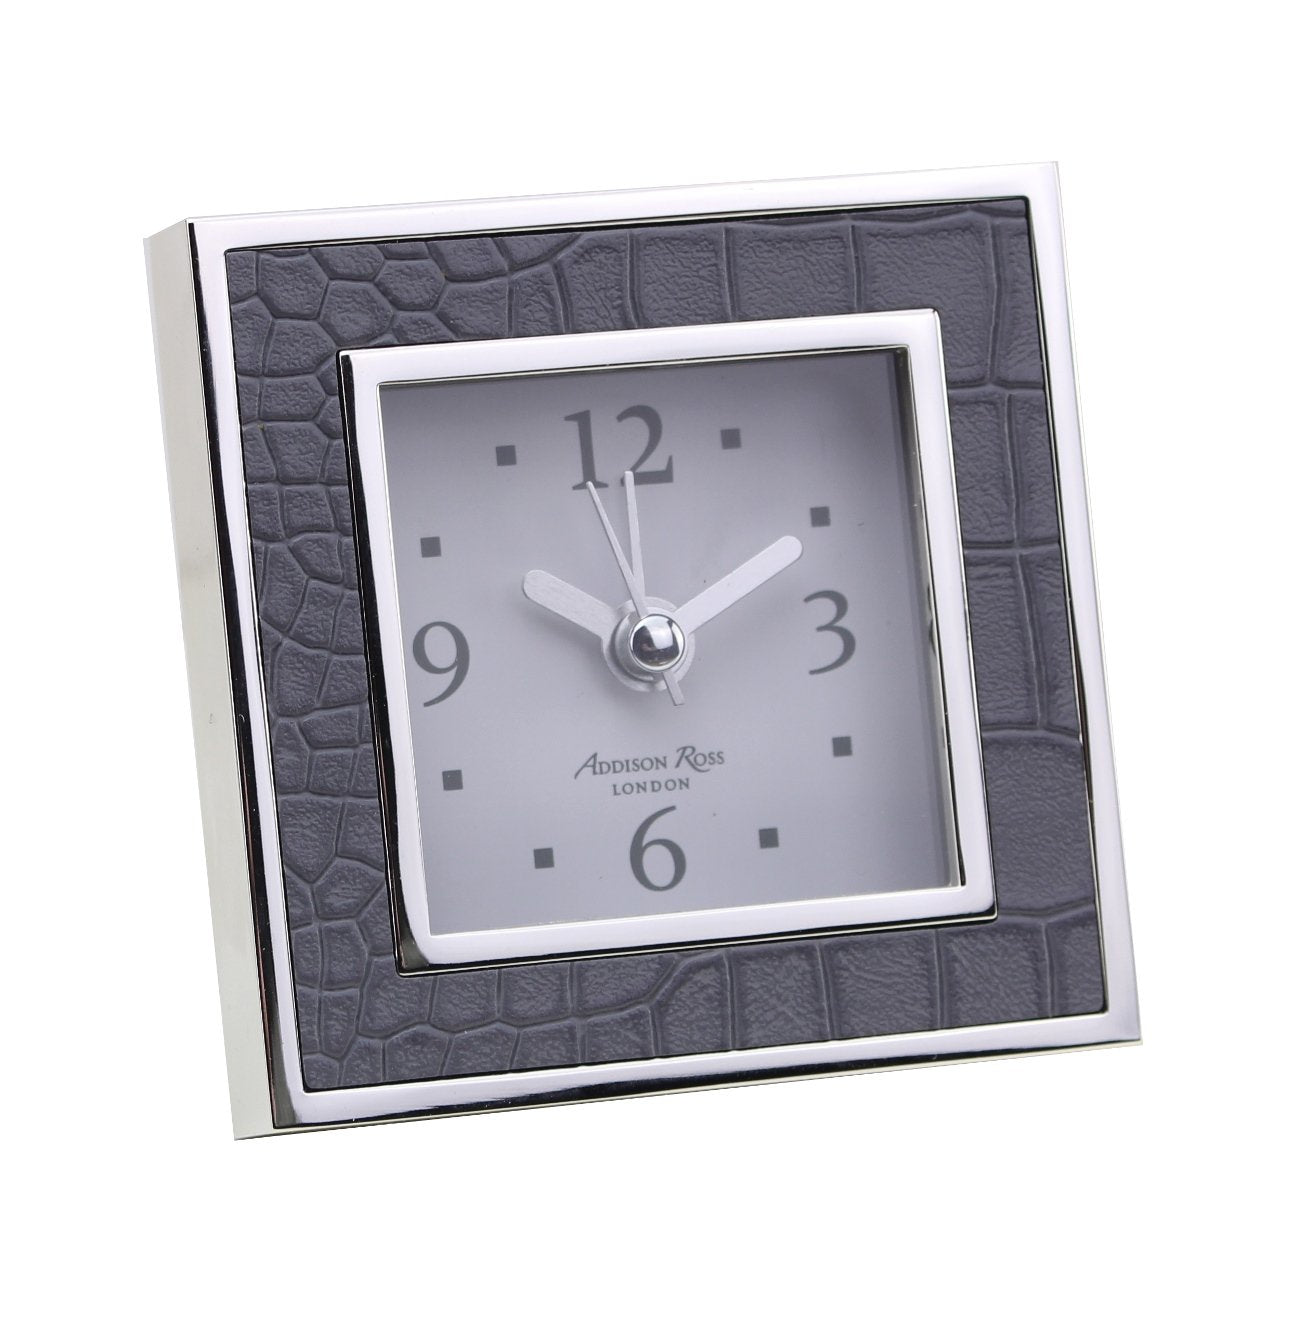 This lovely grey faux croc enamel square alarm clock beautifully complements many of the Addison Ross picture frames. Complete with an alarm function, this clock is ideal for a bedside table or desk. Backed in black velvet with a silver clock movement cover.  This clock features a silent sweep movement making it the perfect addition to a bedside table.  Requires 1 AA battery. Keep dry, clean with a duster. Measures 8cm x 8cm x 5.5cm (including leg) Beautifully packed in a branded box and tissue paper.